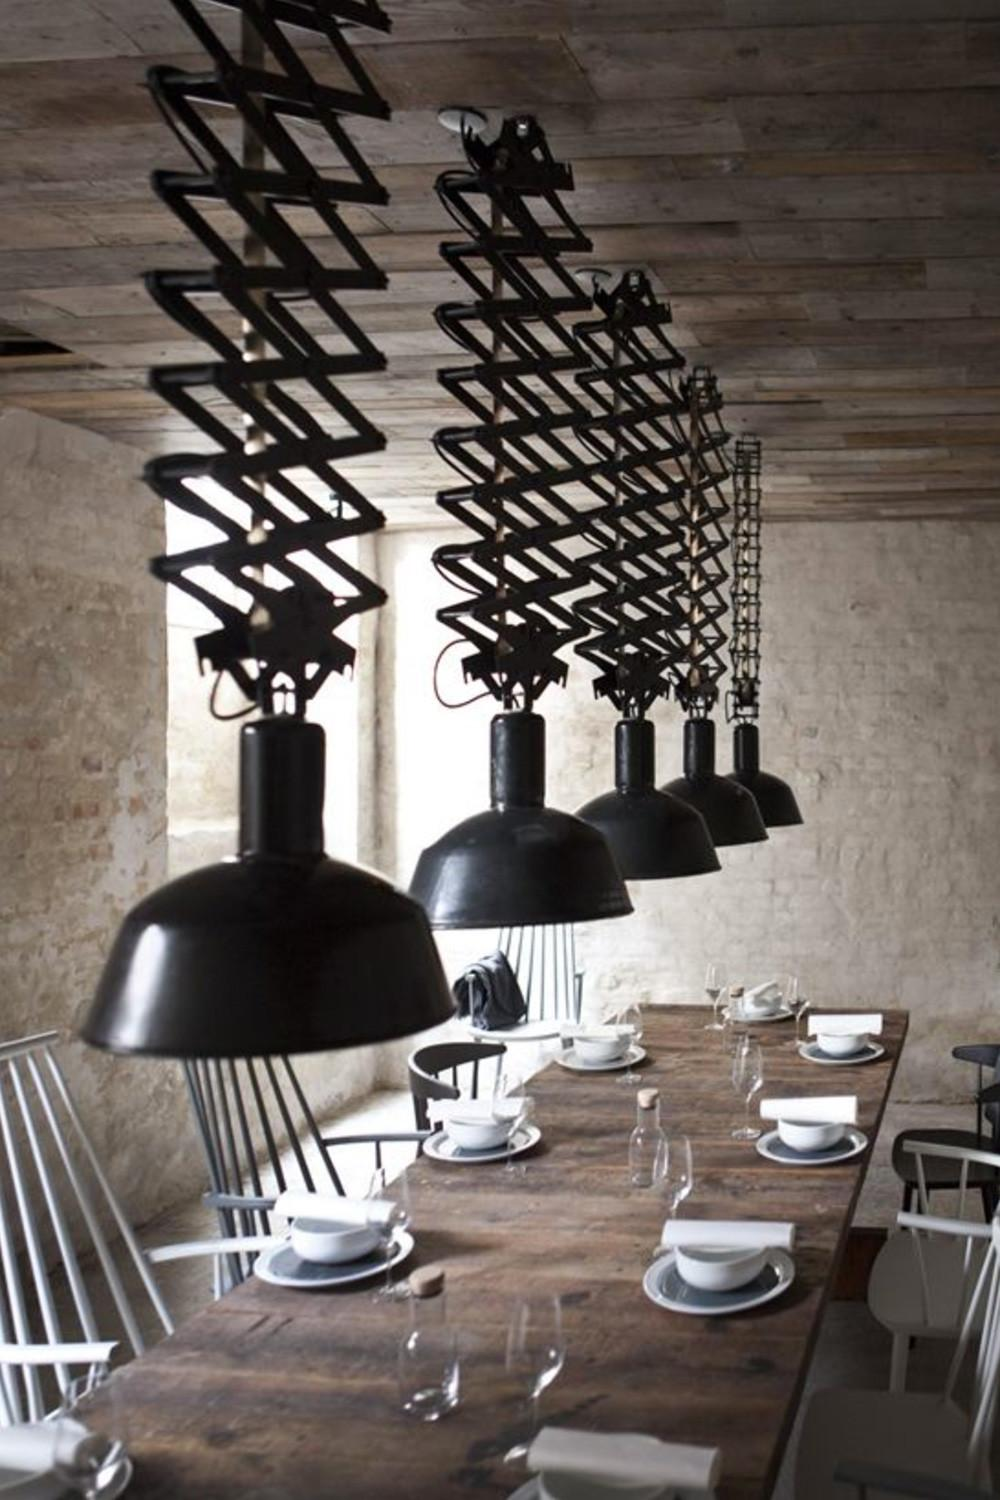 World Best Design Restaurant 2013 Norm